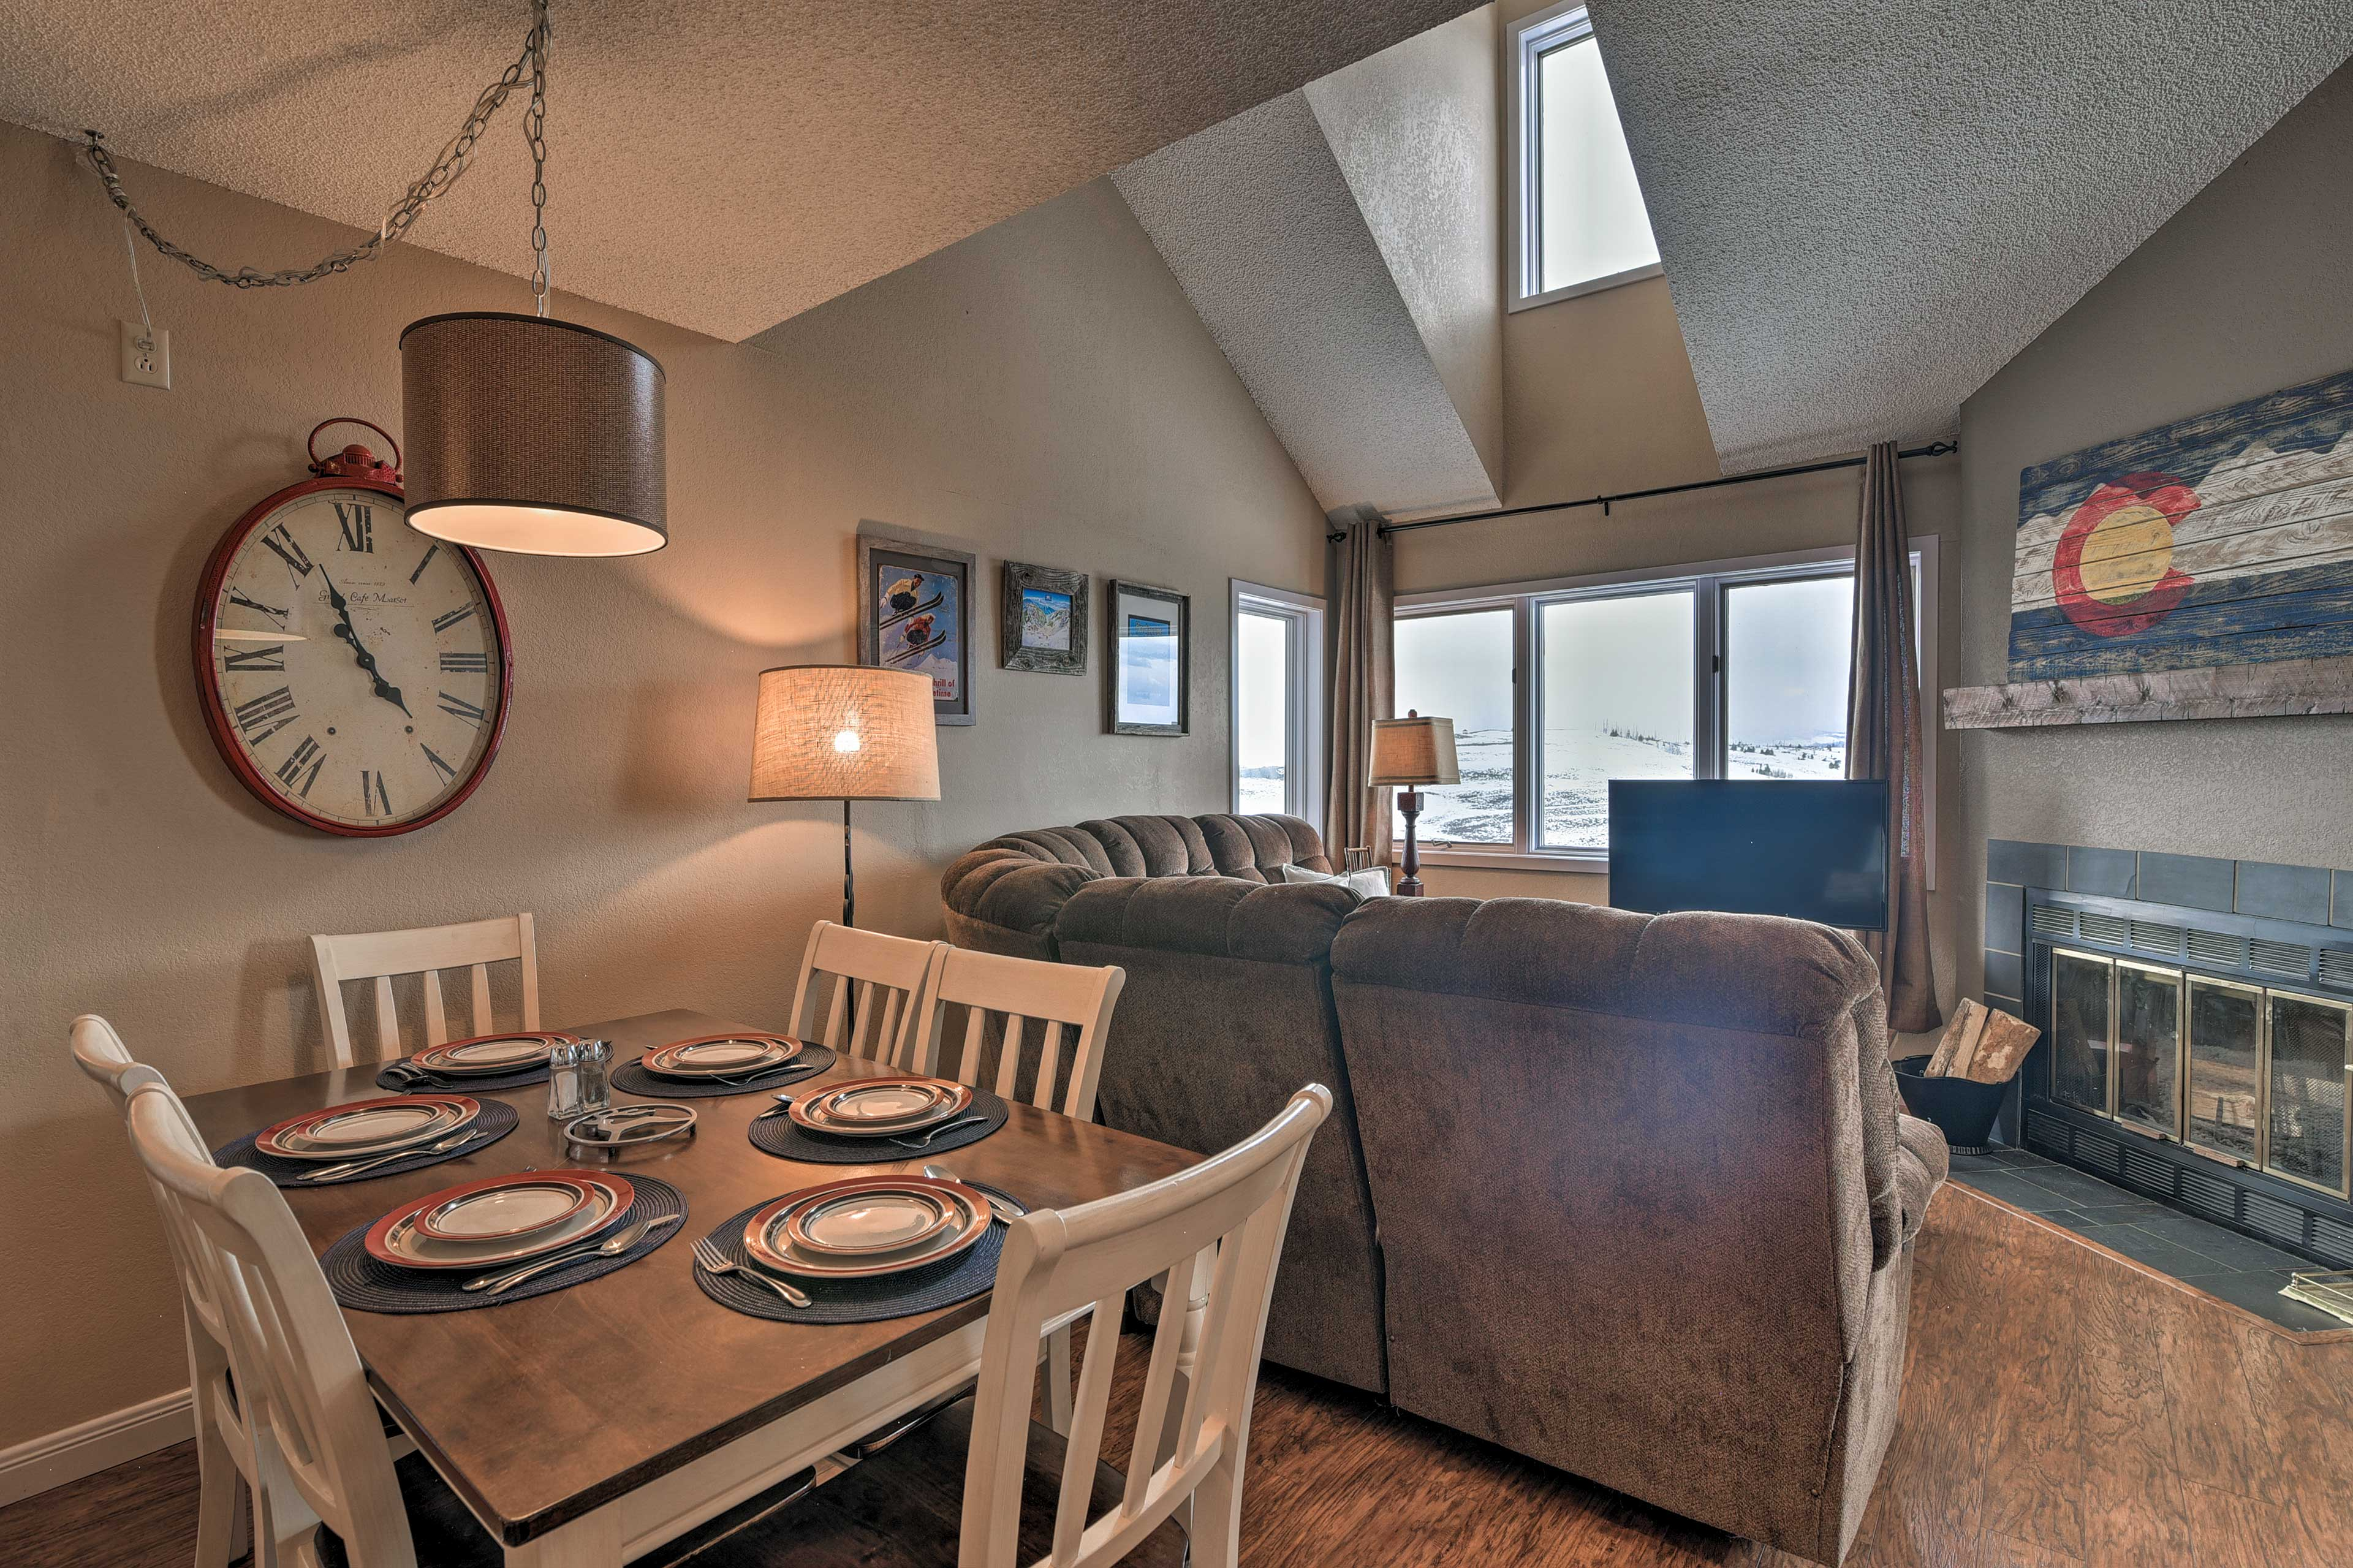 This well-appointed unit features 3 bedrooms and 2 full baths.